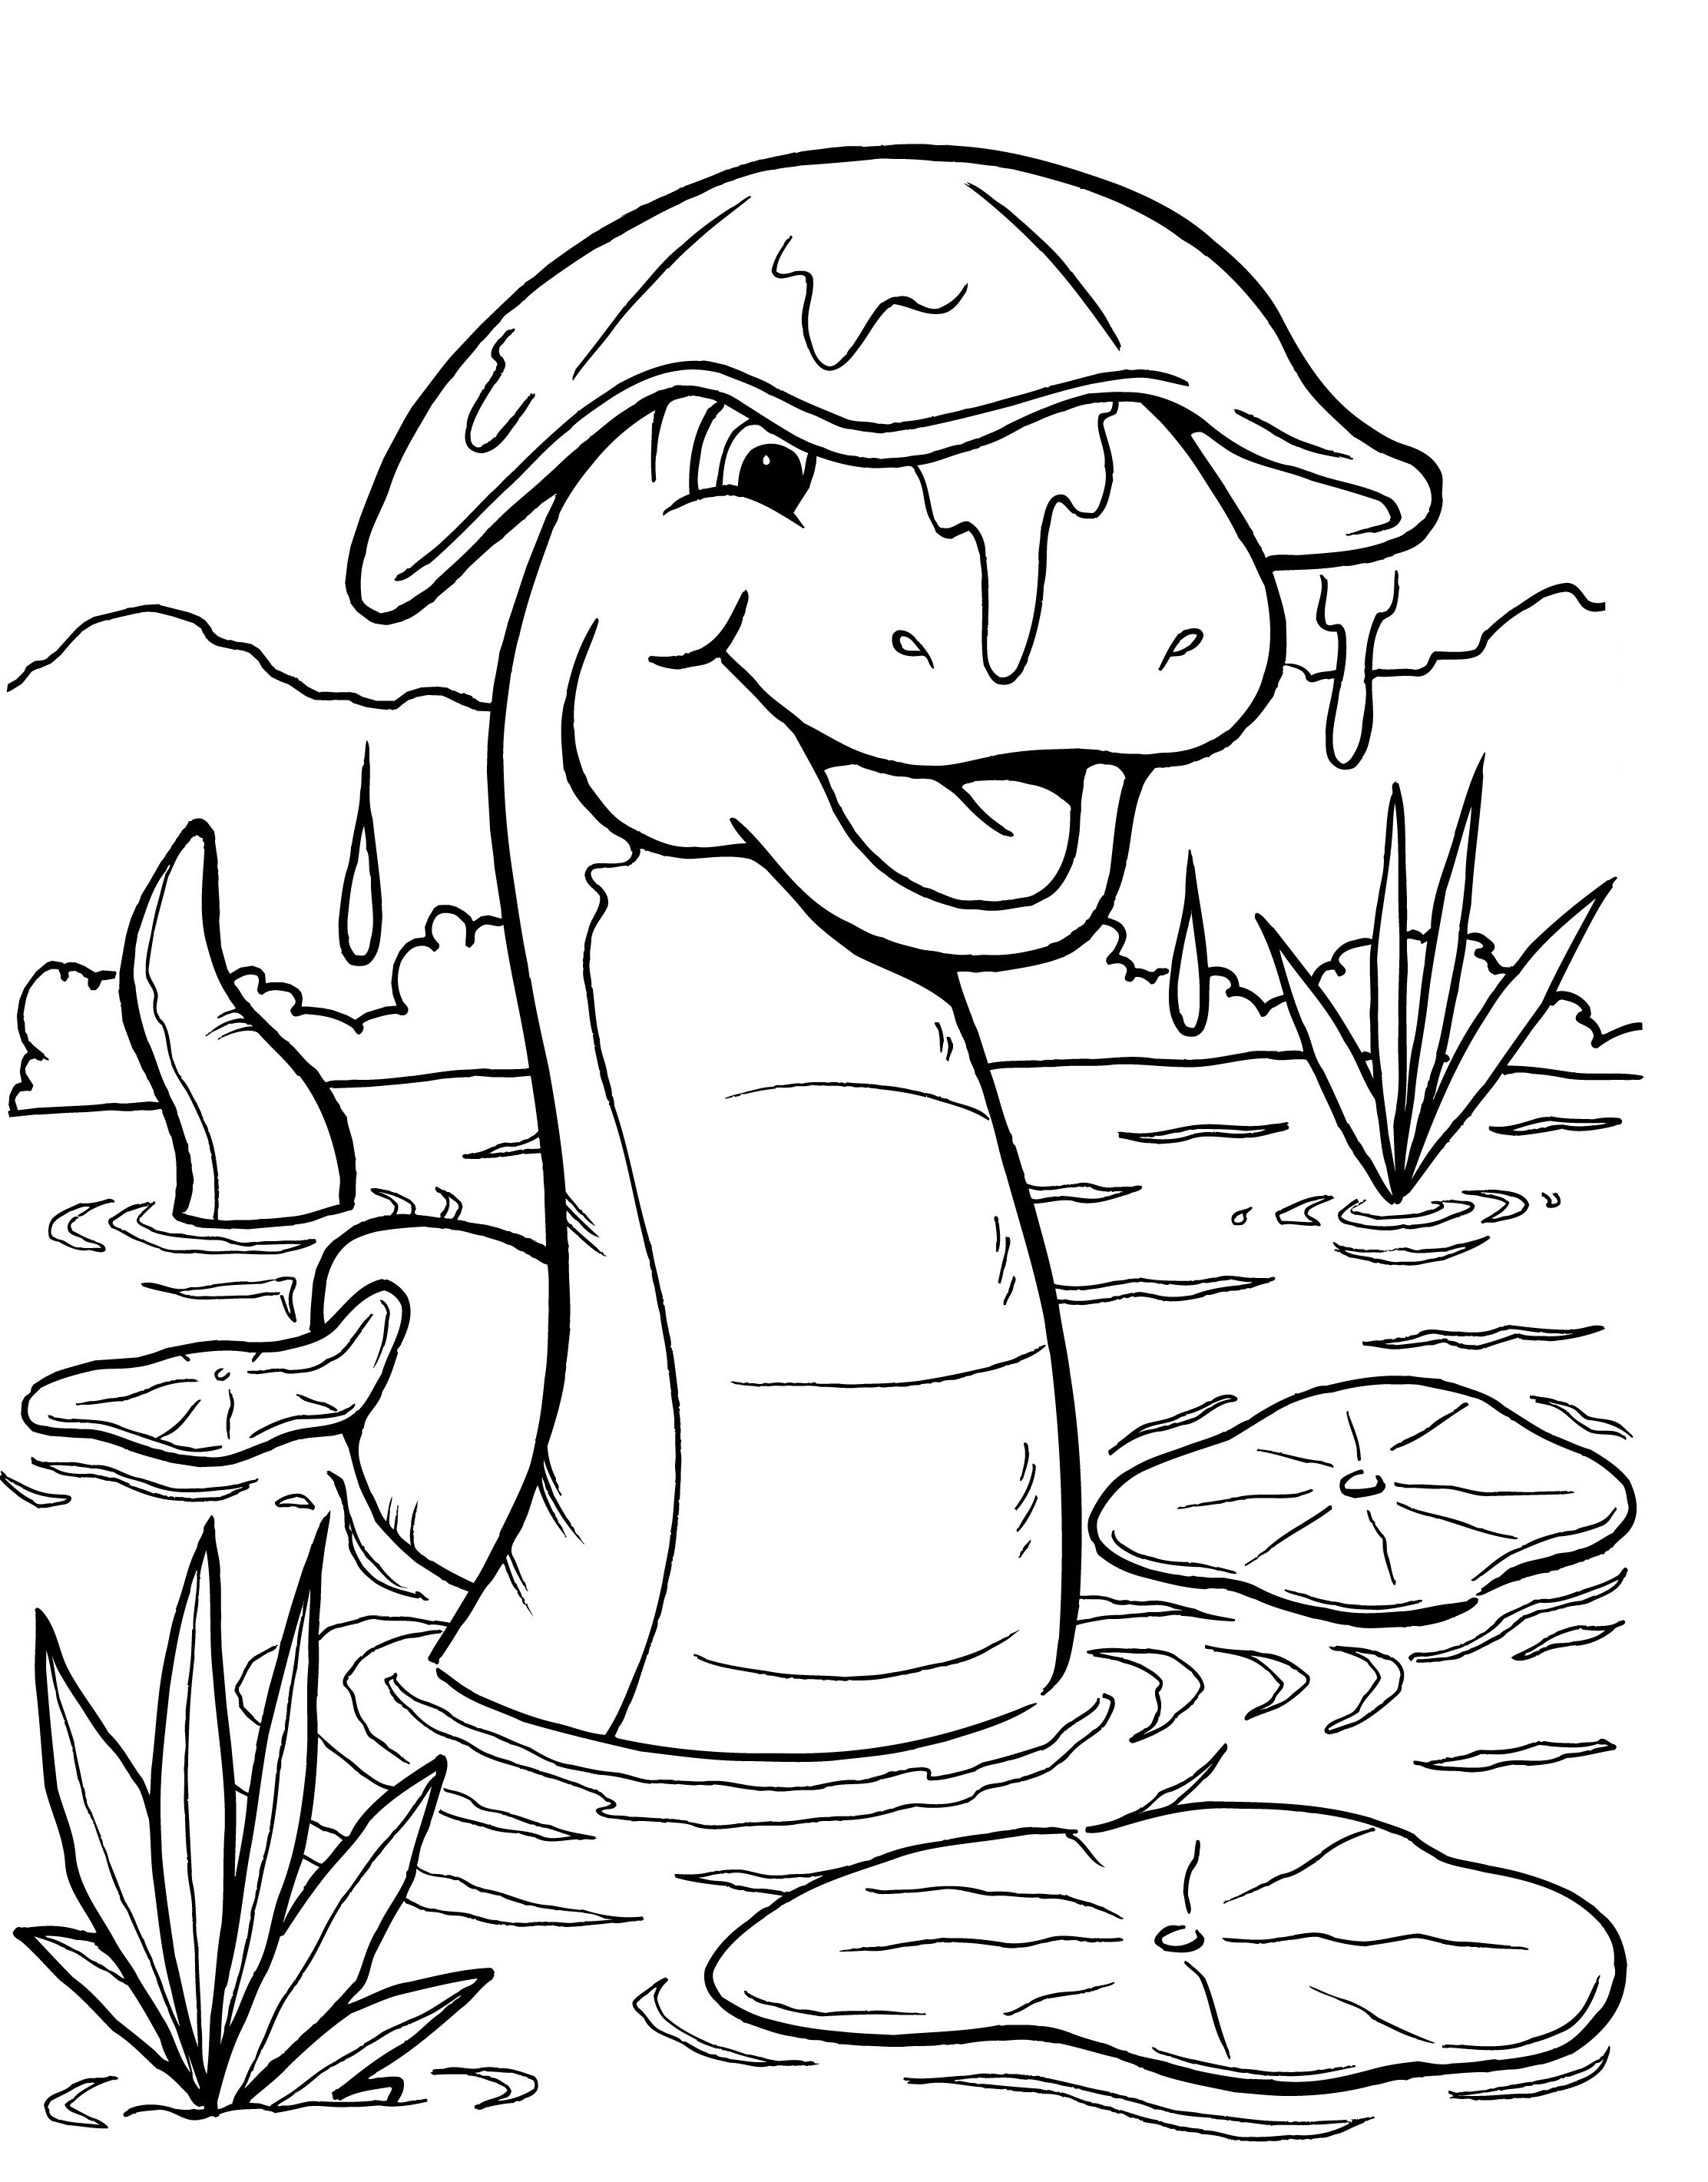 lily coloring book pages - photo#27